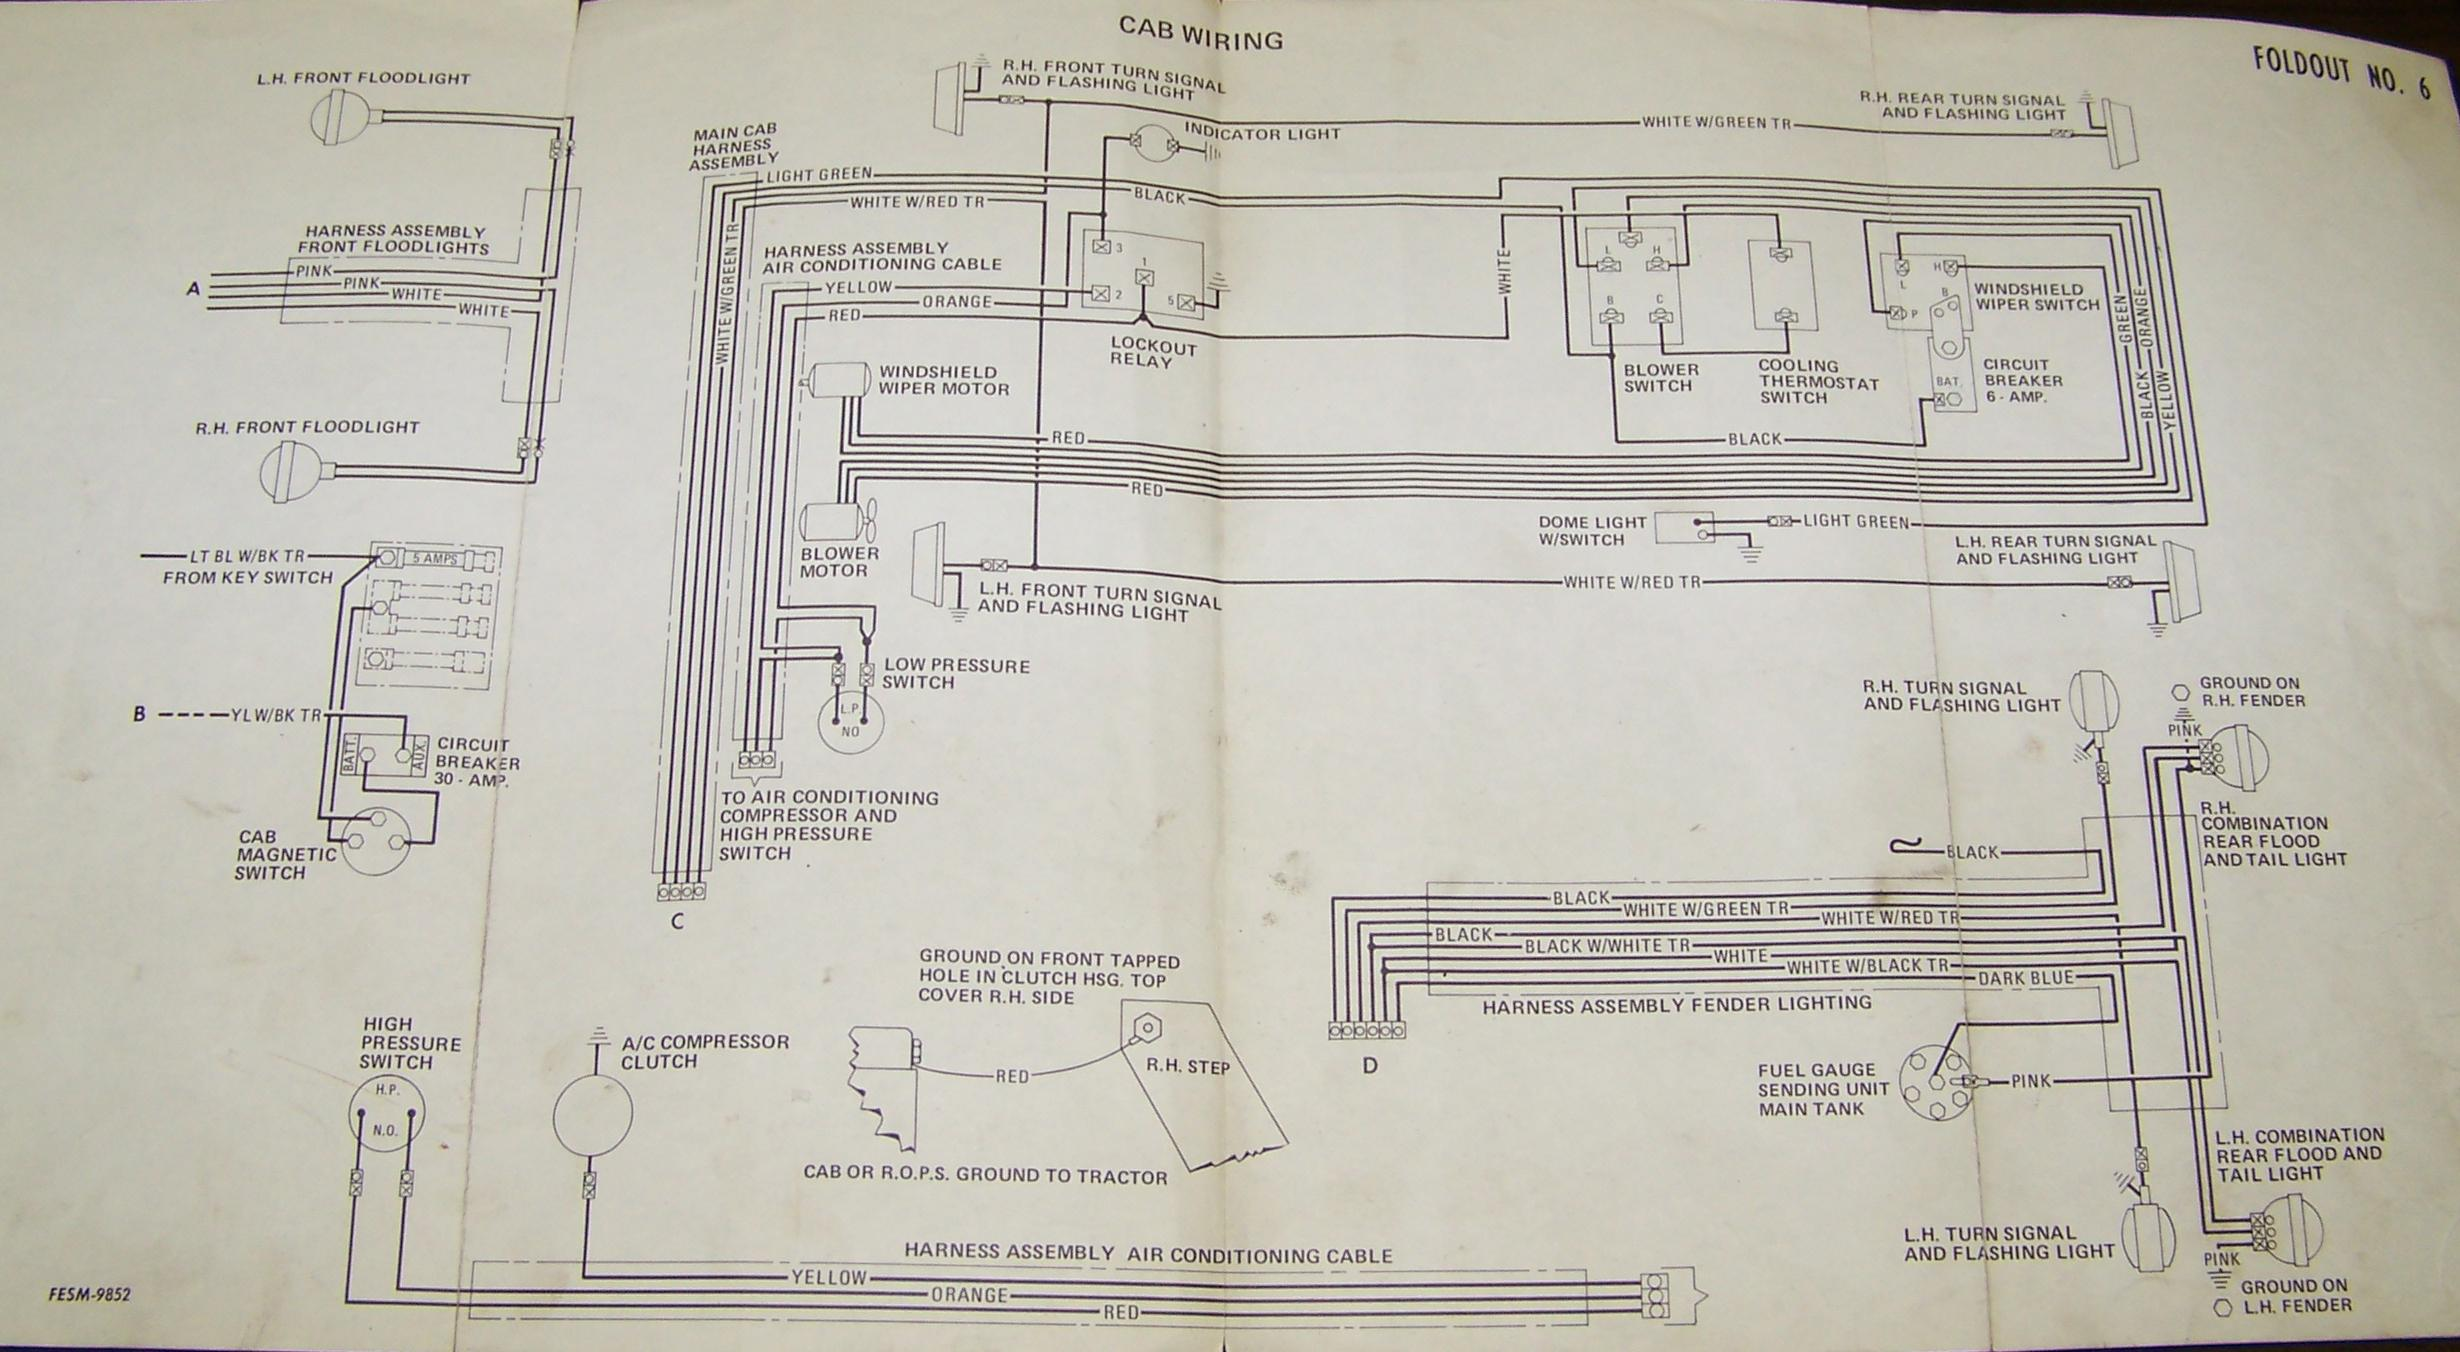 Wiring Diagram For Ih656